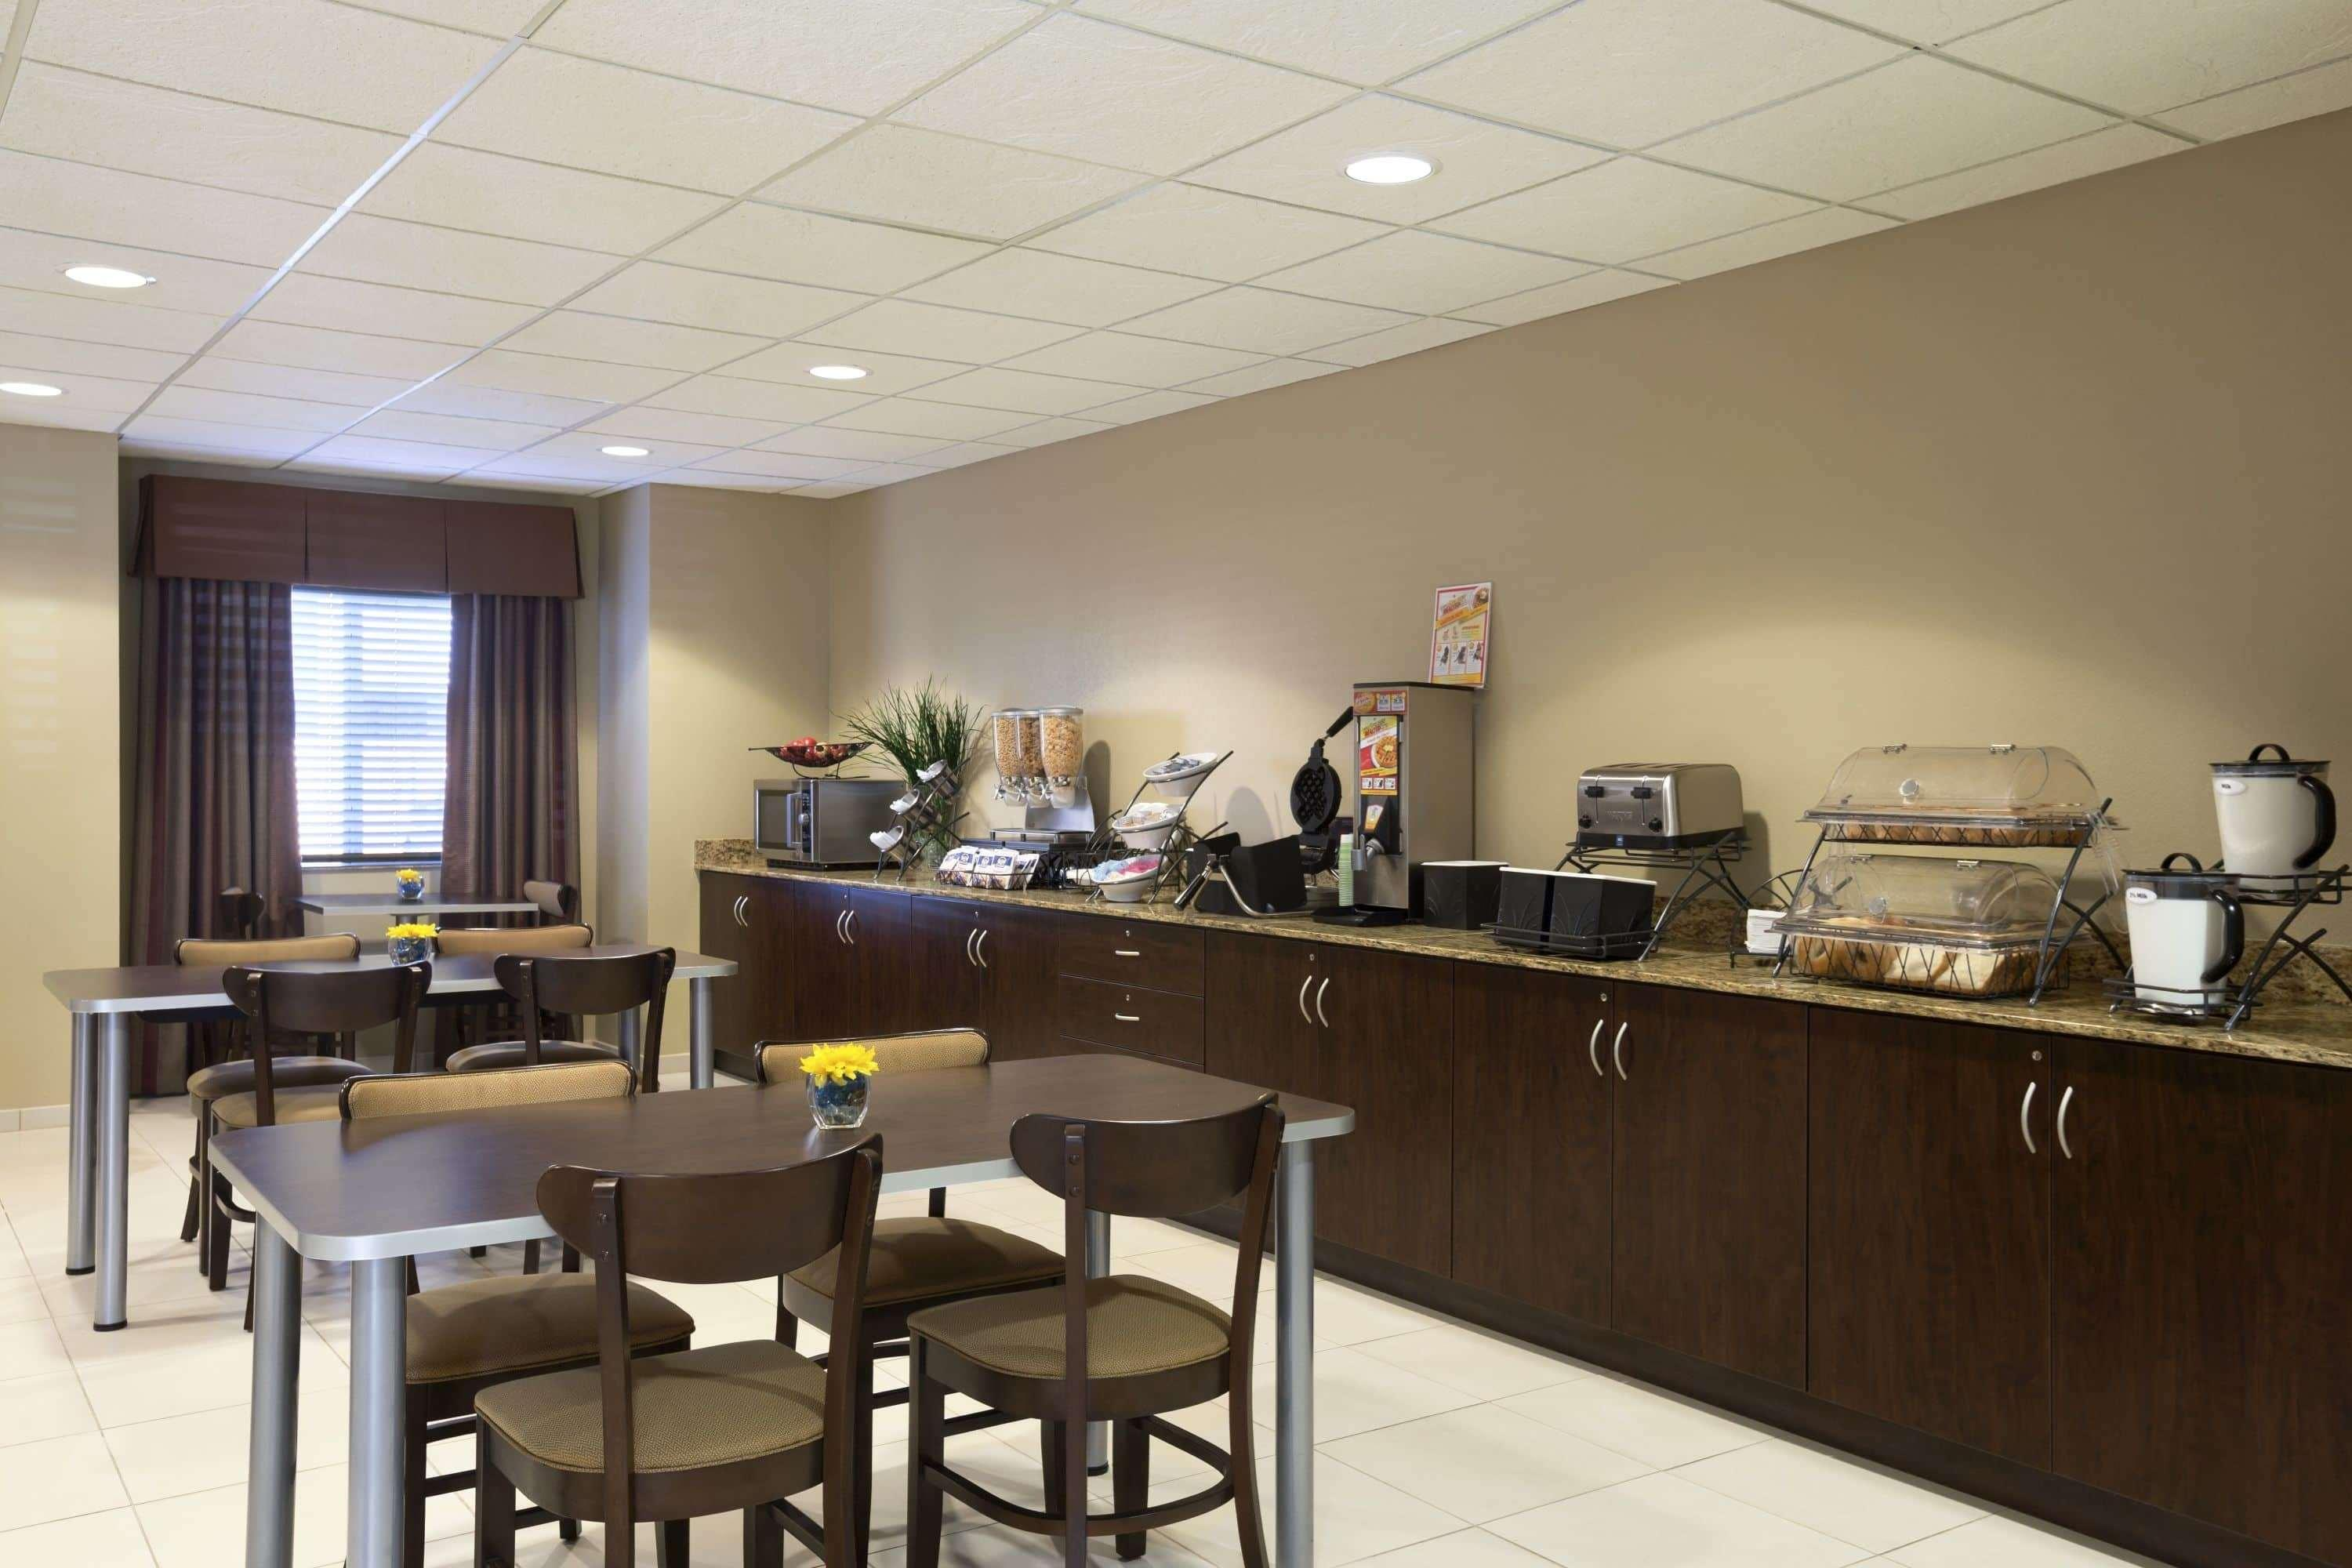 MICROTEL INN & SUITES BY WYNDHAM ODESSA, Ector